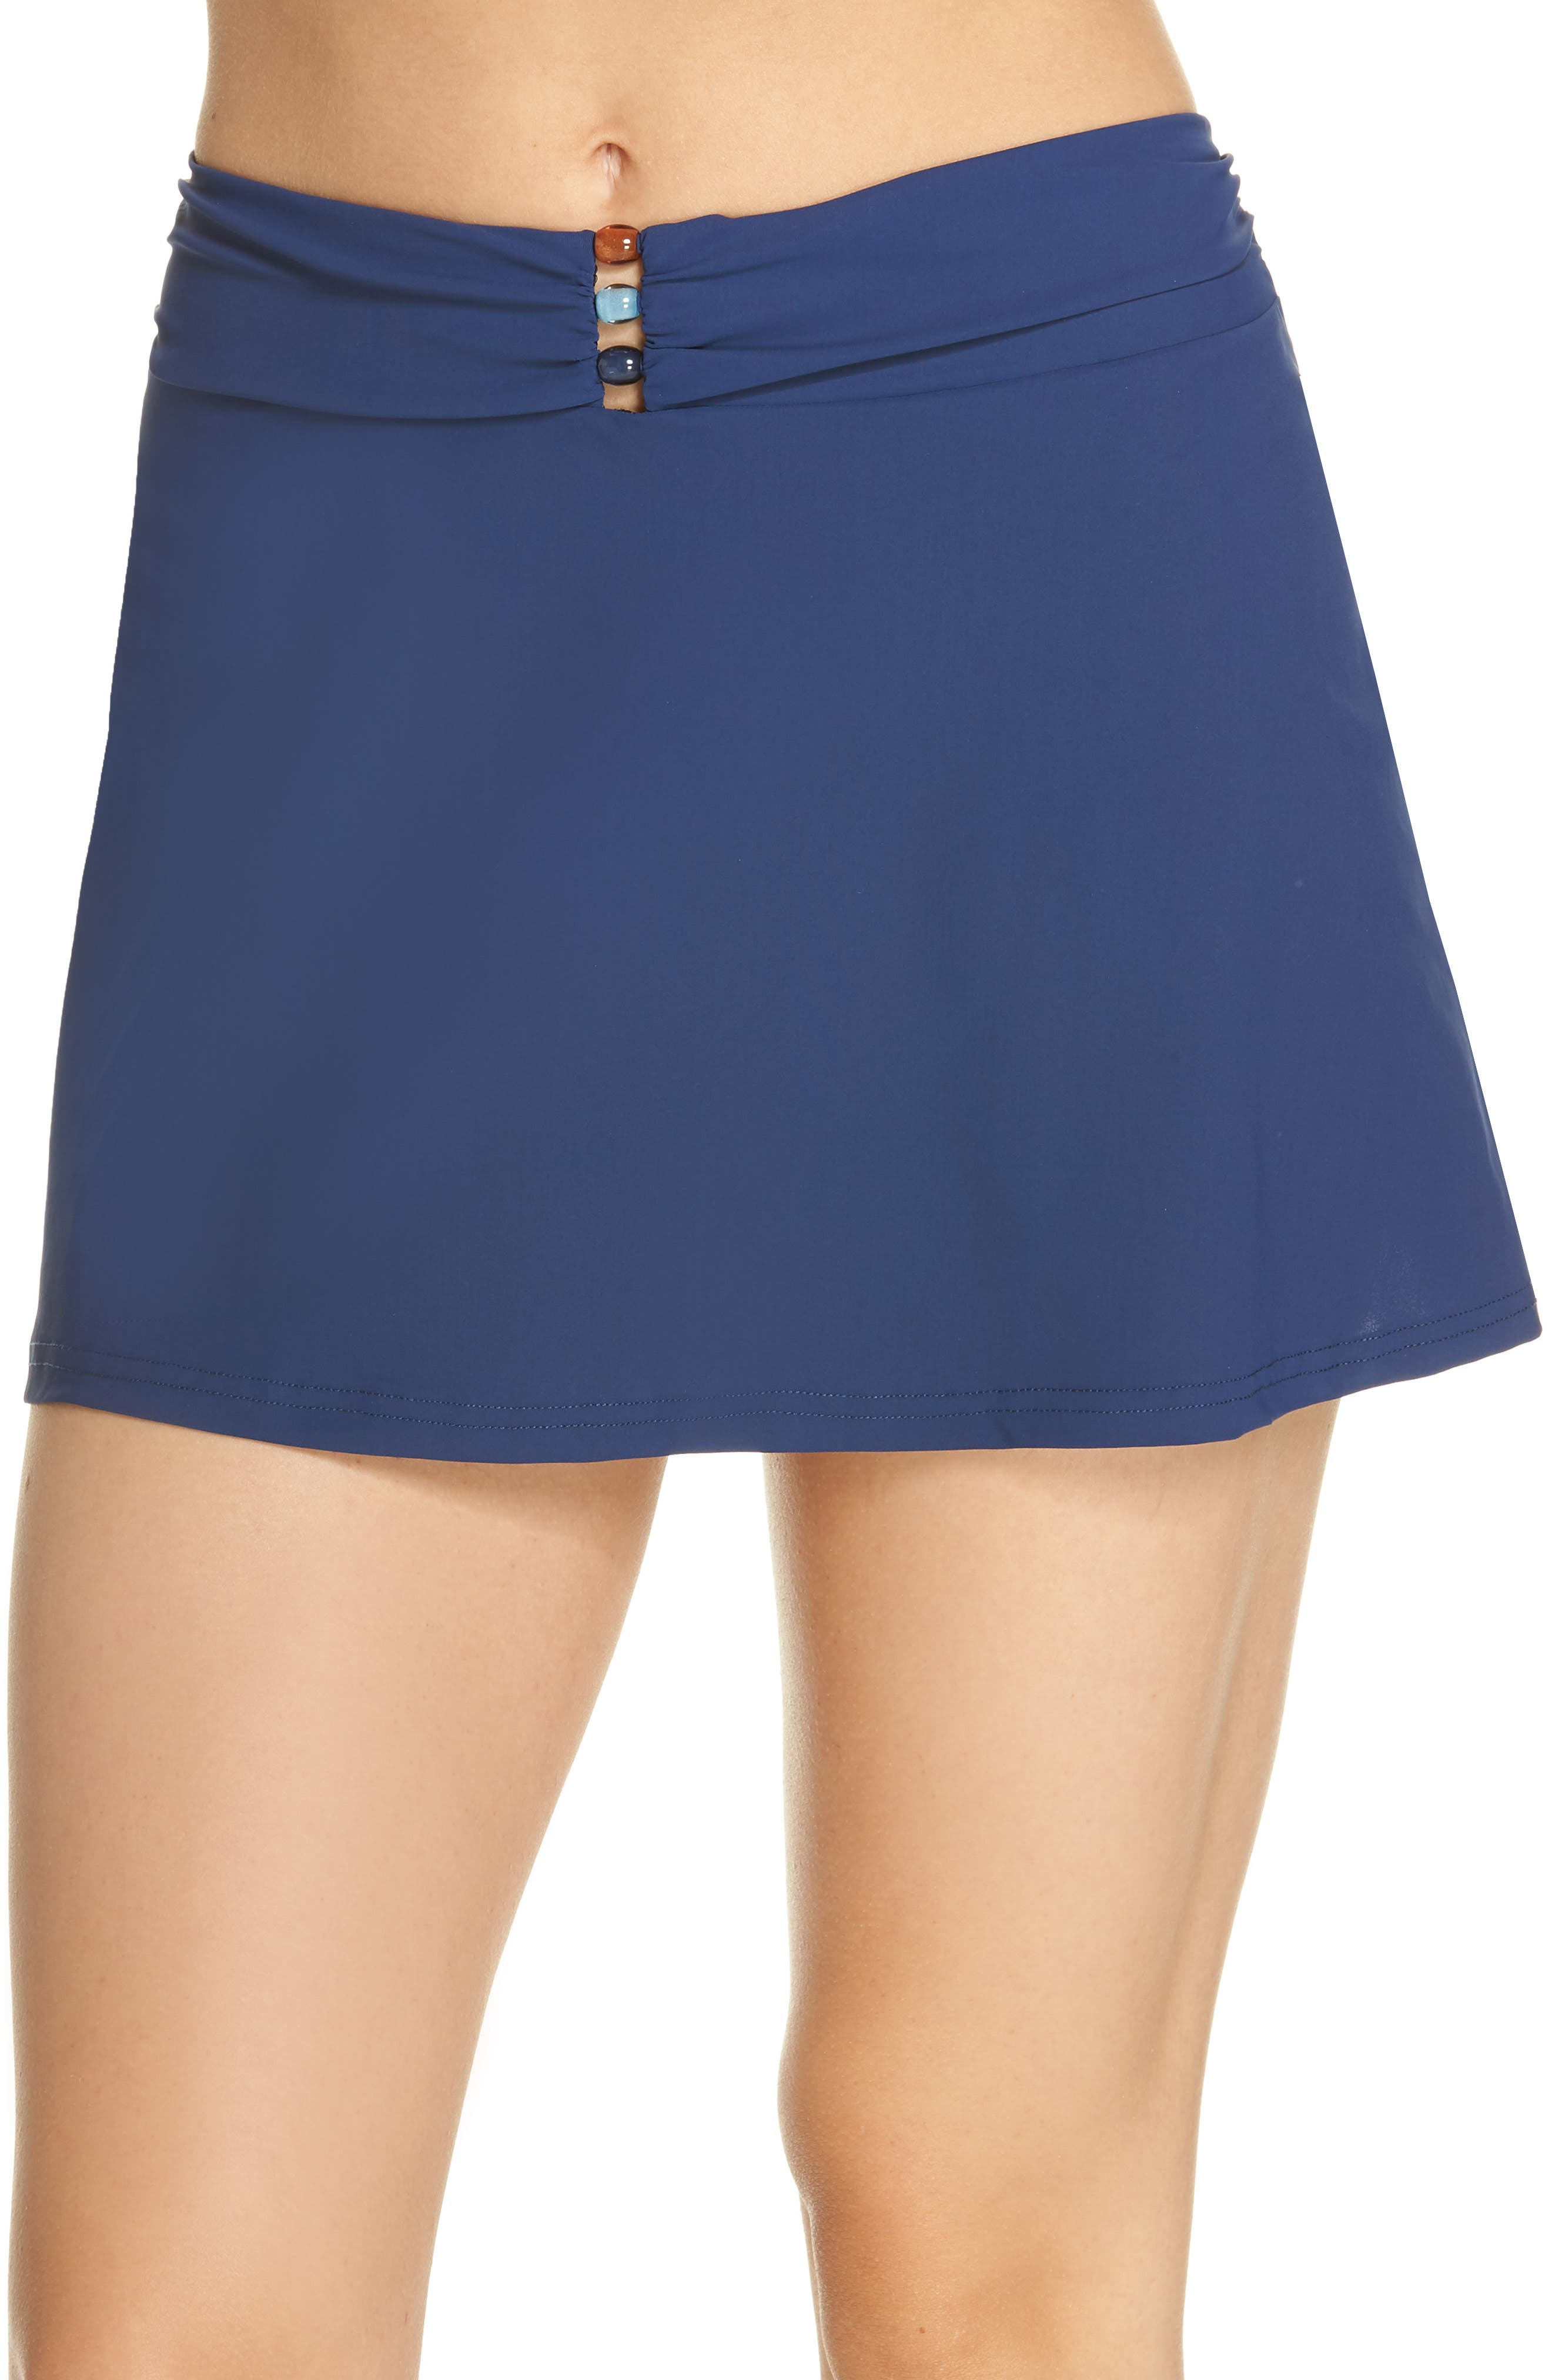 PROFILE BY GOTTEX BEADED COVER-UP SKIRT